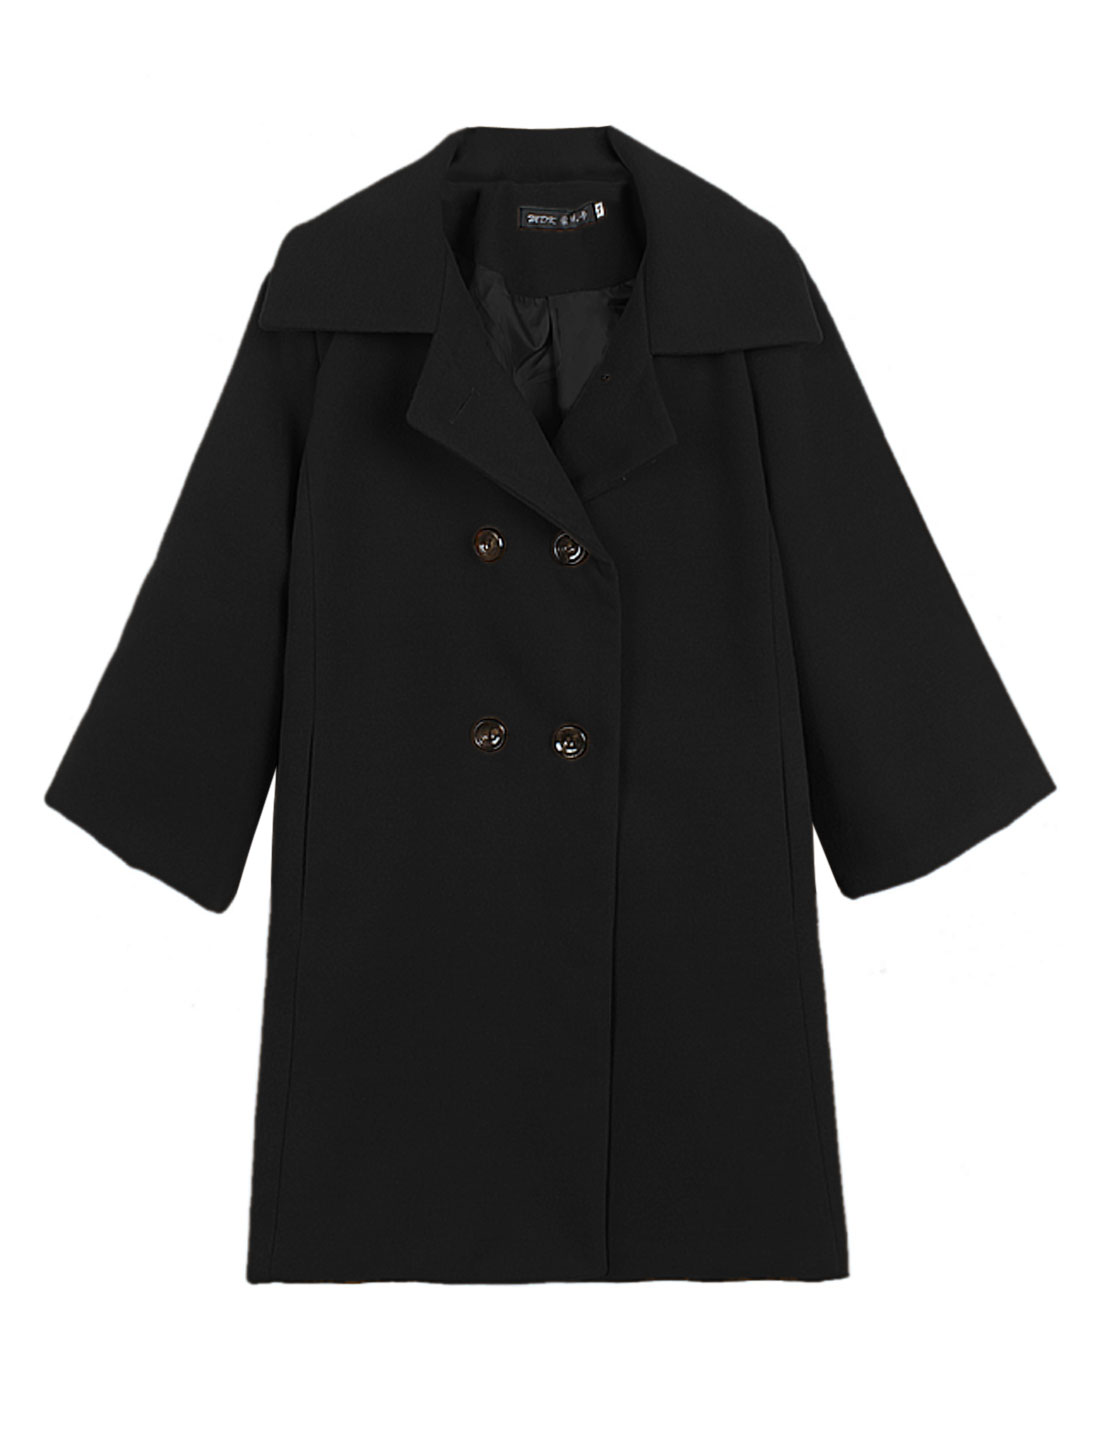 Lady Turn Down Collar Double Breasted Casual Worsted Trench Coat Black M